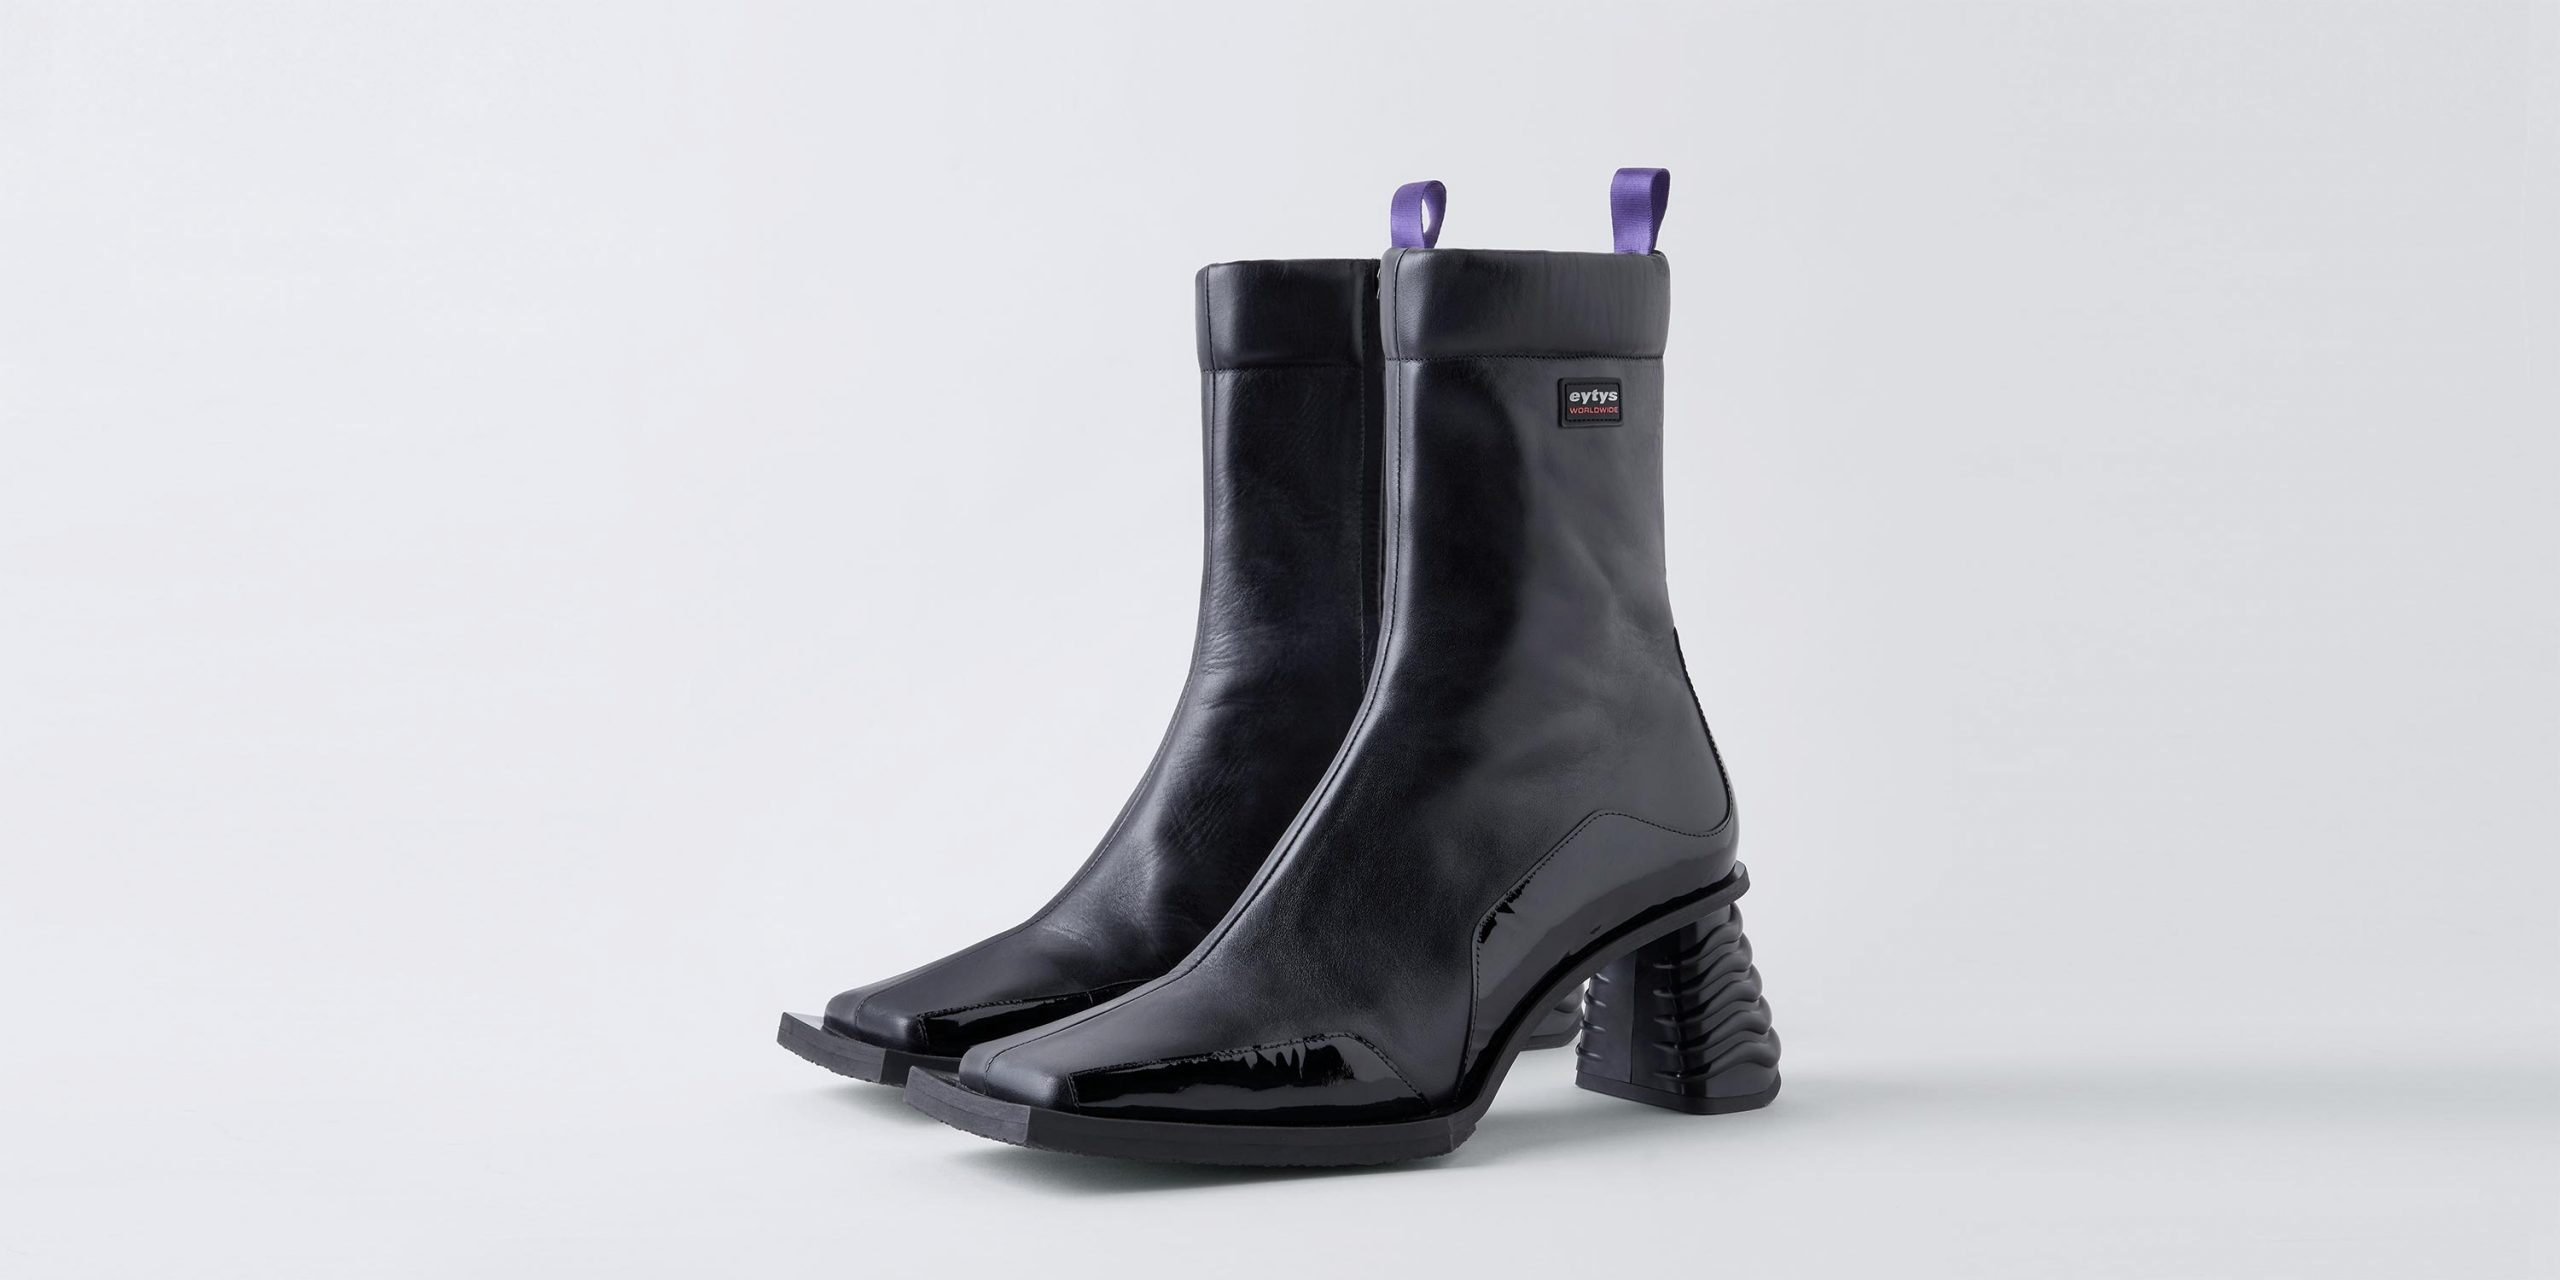 Gaia Boots by Eytys, available on eytys.com for SEK4000 Hailey Baldwin Shoes Exact Product